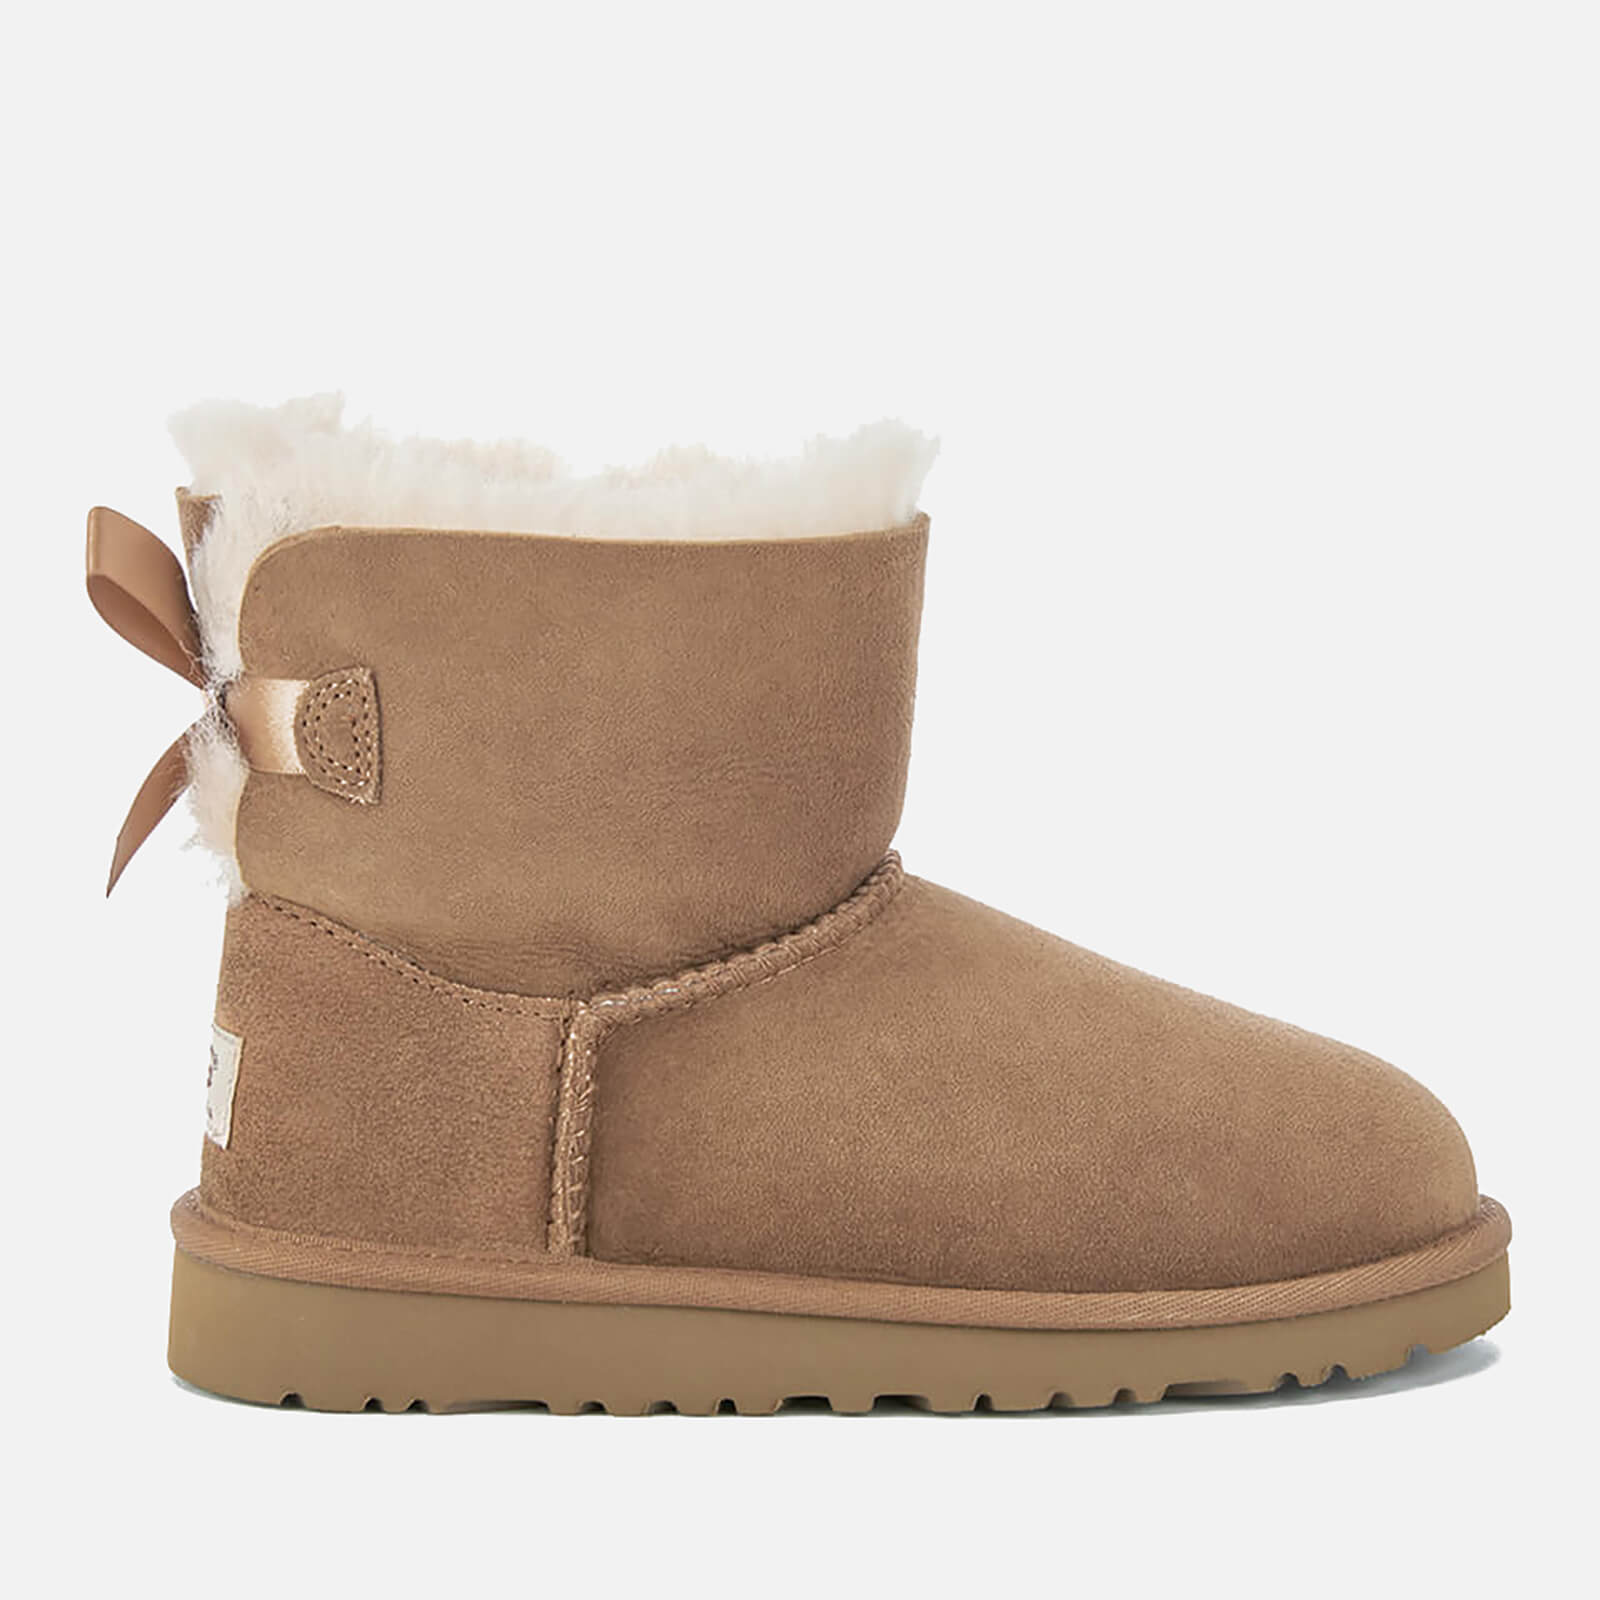 1596cac30f4 UGG Kids' Mini Bailey Bow Boots - Chestnut